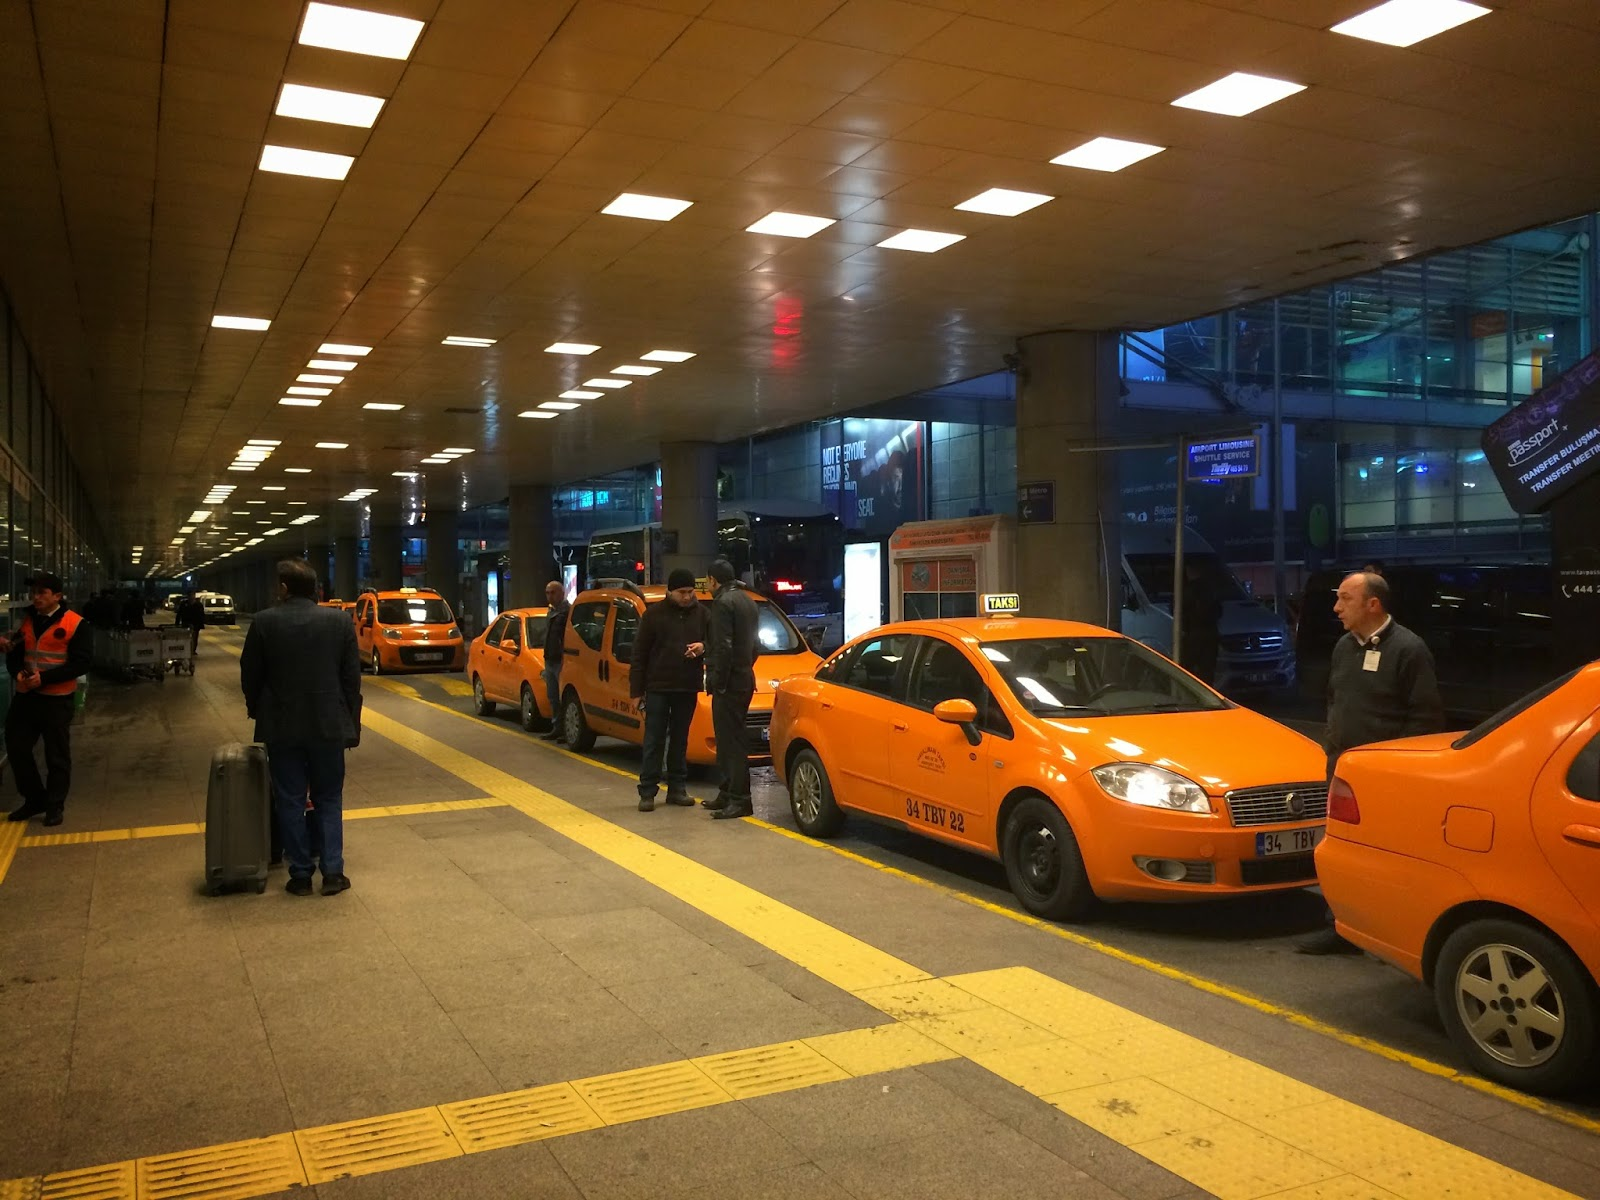 taxi stand outside of Istanbul airport